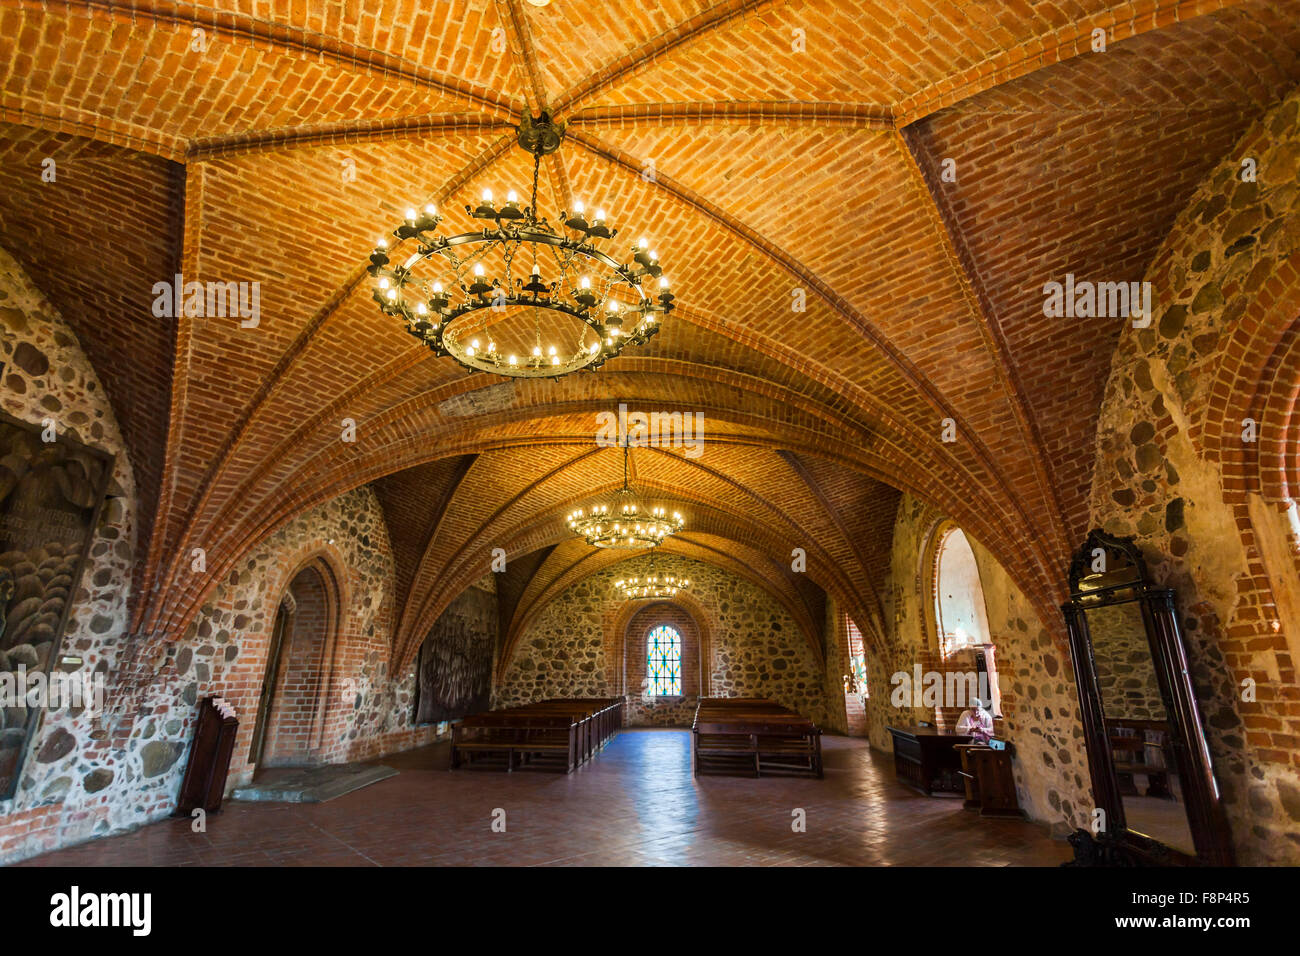 brick fan vaulted veiling interior of trakai castle and chandelier lake galve trakai an historic city and lake resort in lithuania eastern europe